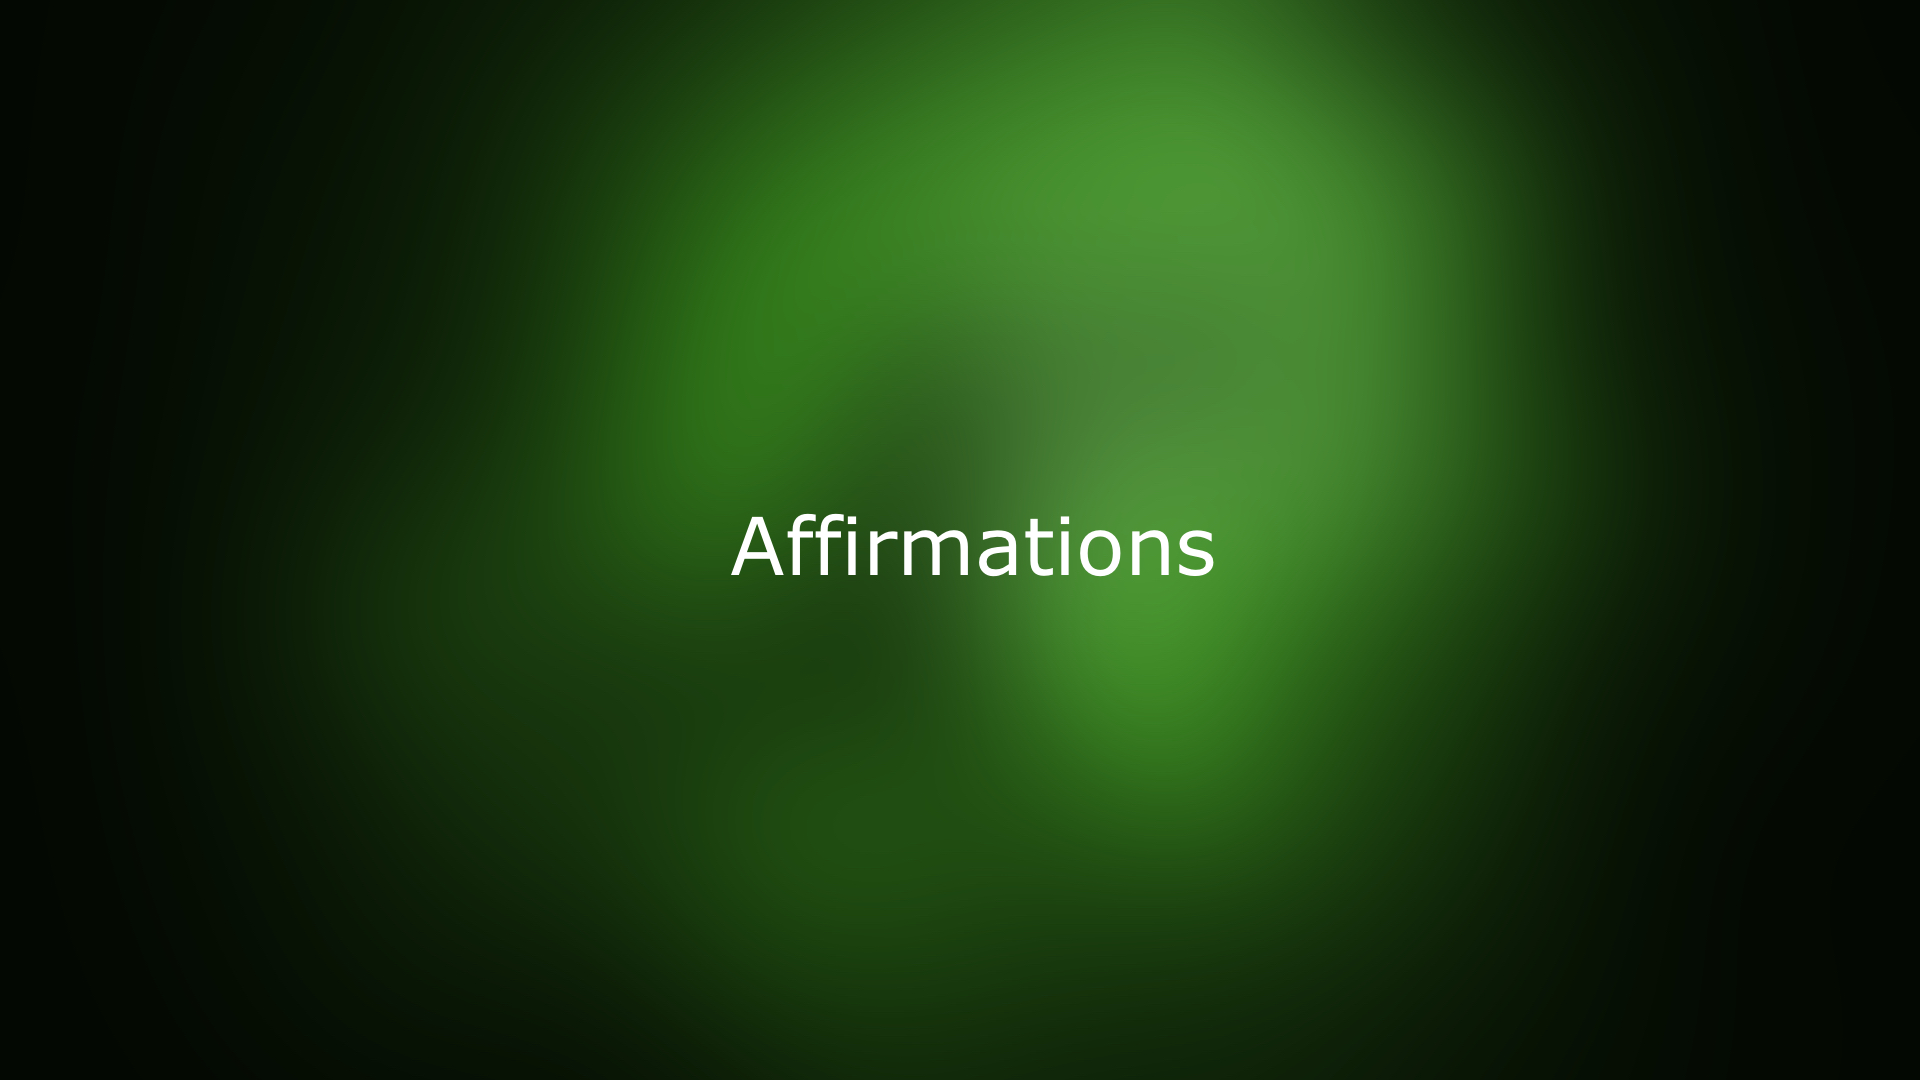 deep green color behind affirmation text